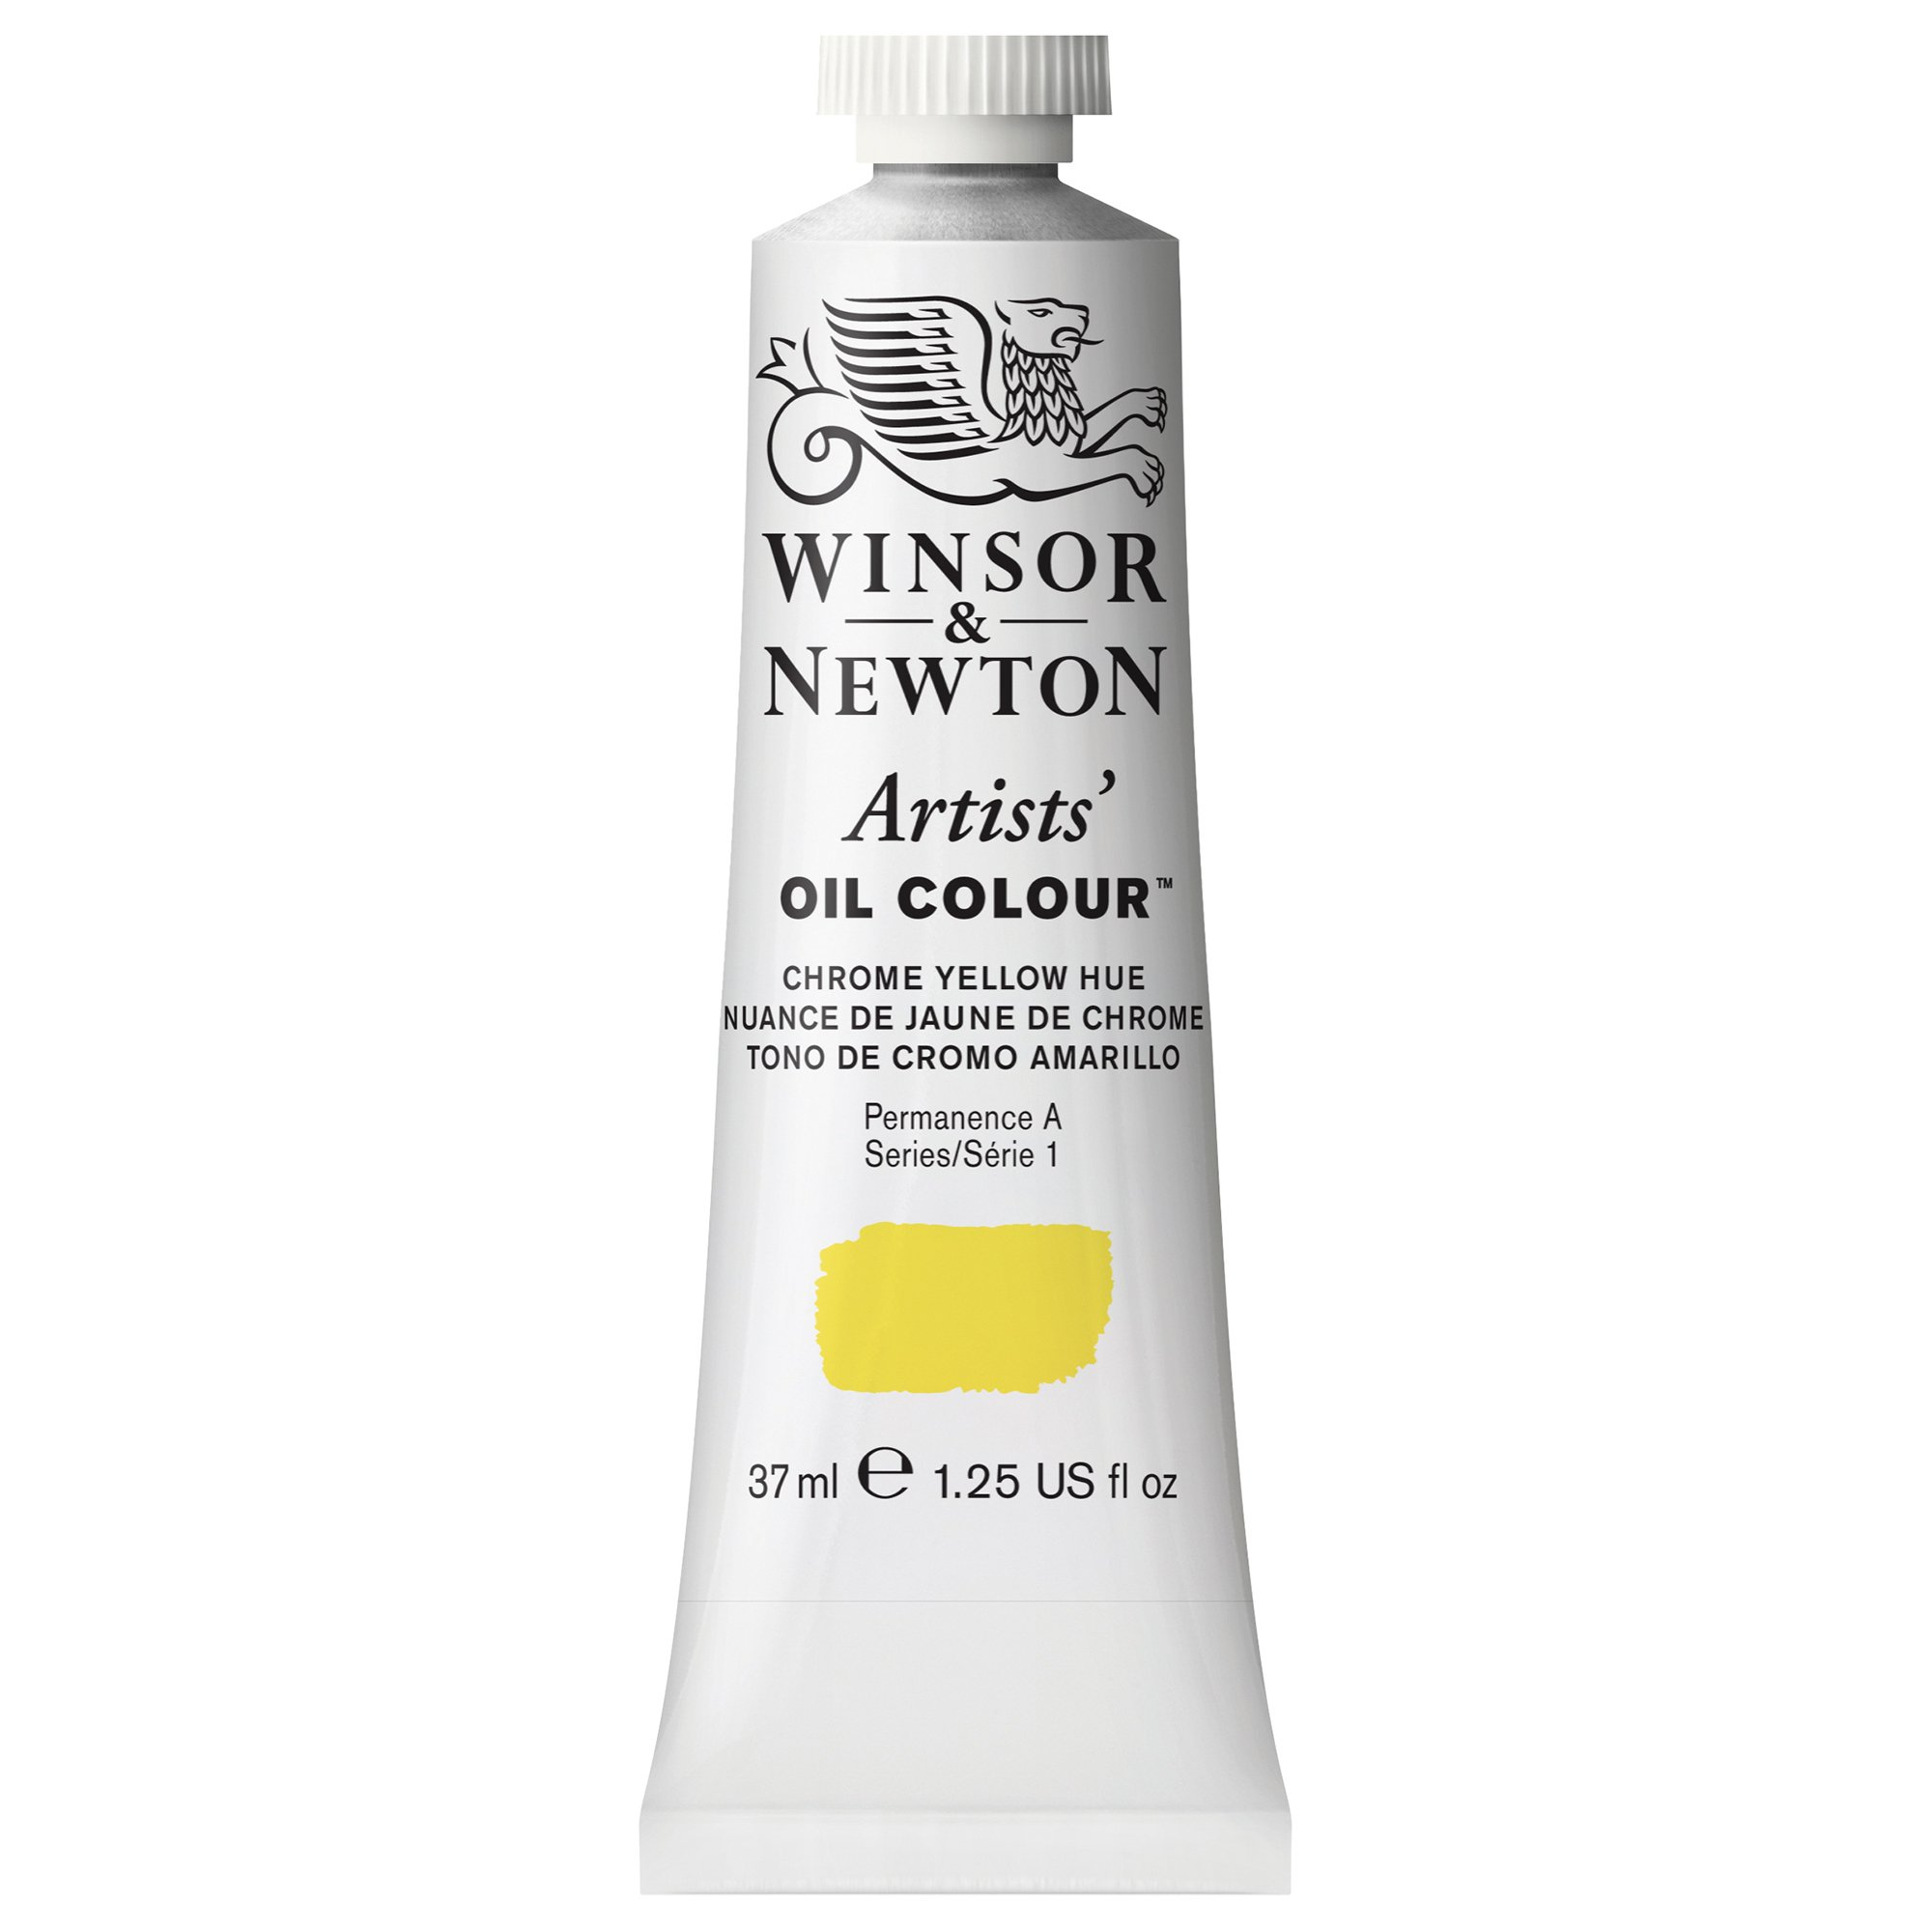 Winsor & Newton Artists' Oil Color Paint, 37-ml Tube, Chrome Yellow Hue